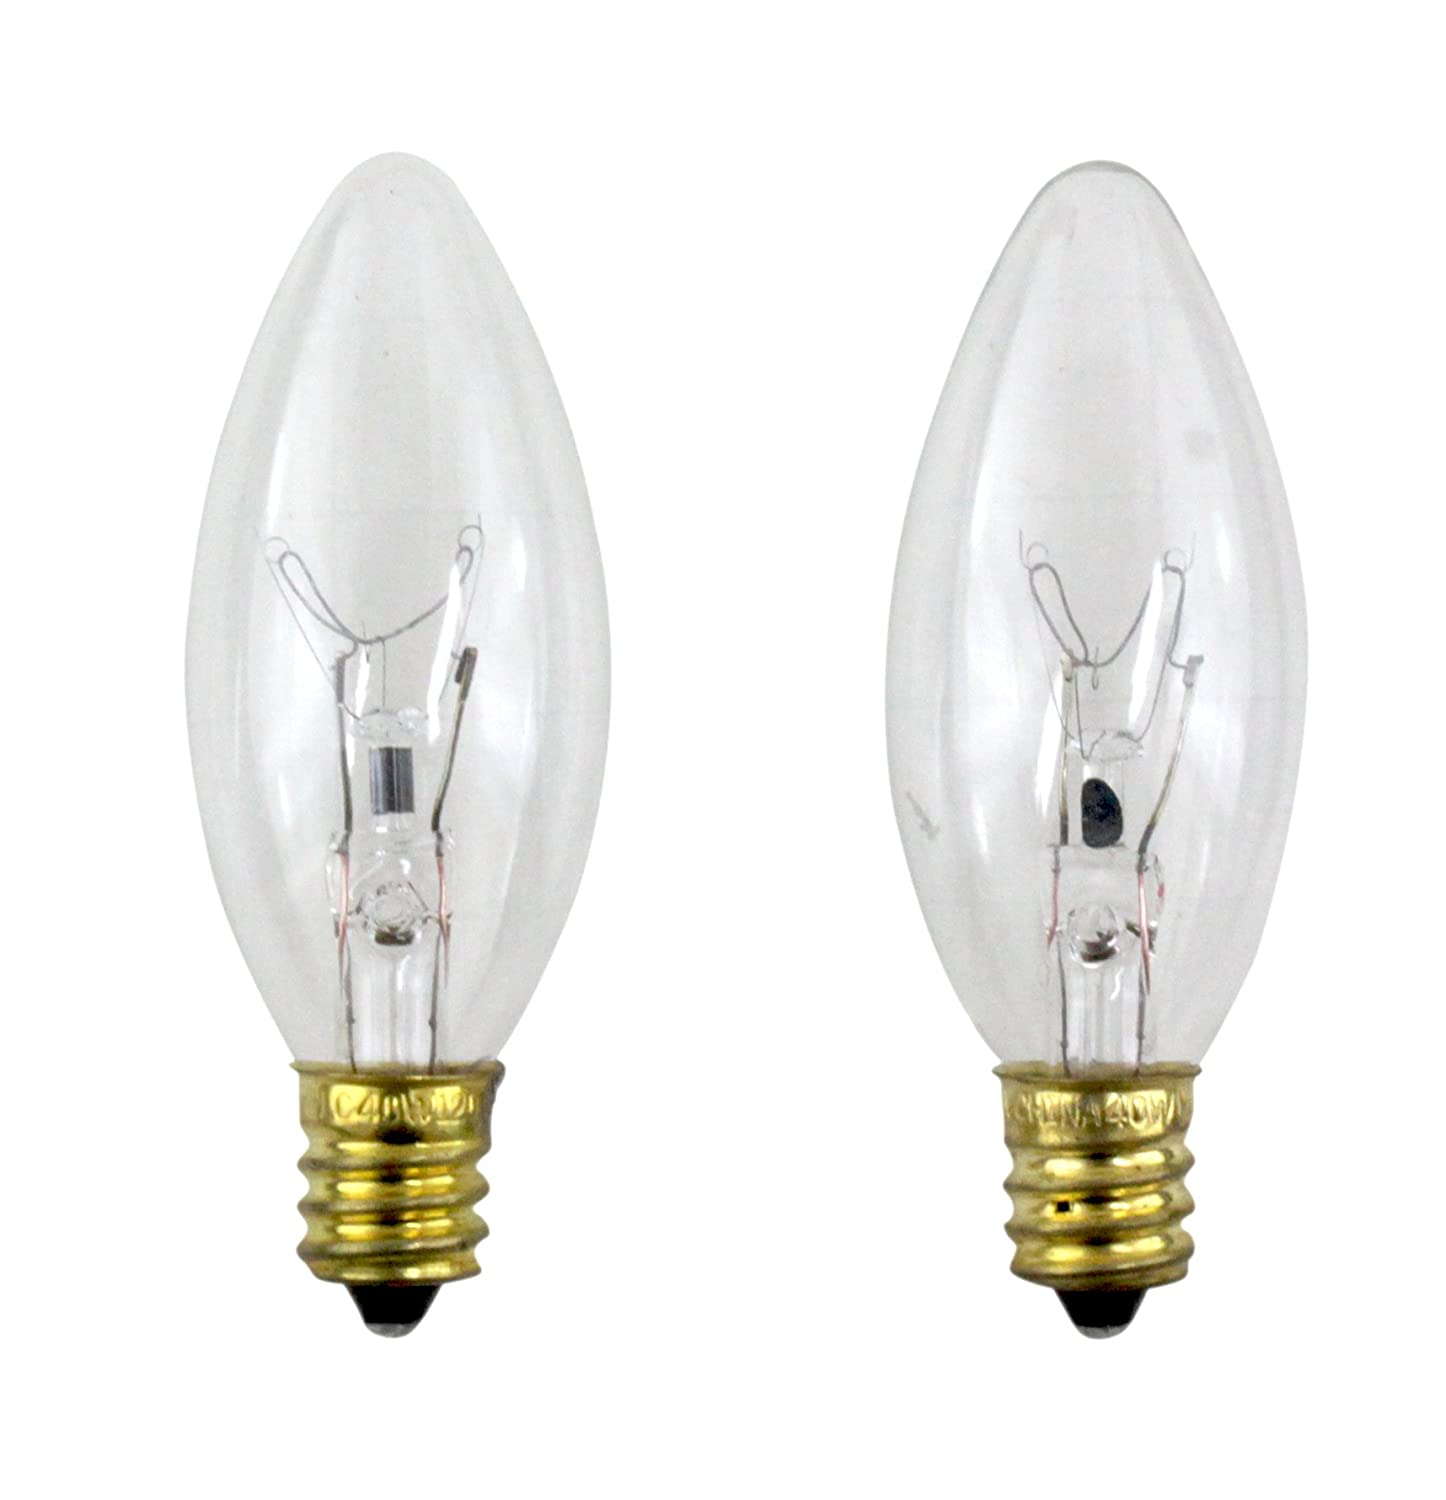 Ceiling fan bulb Light bulb wattage